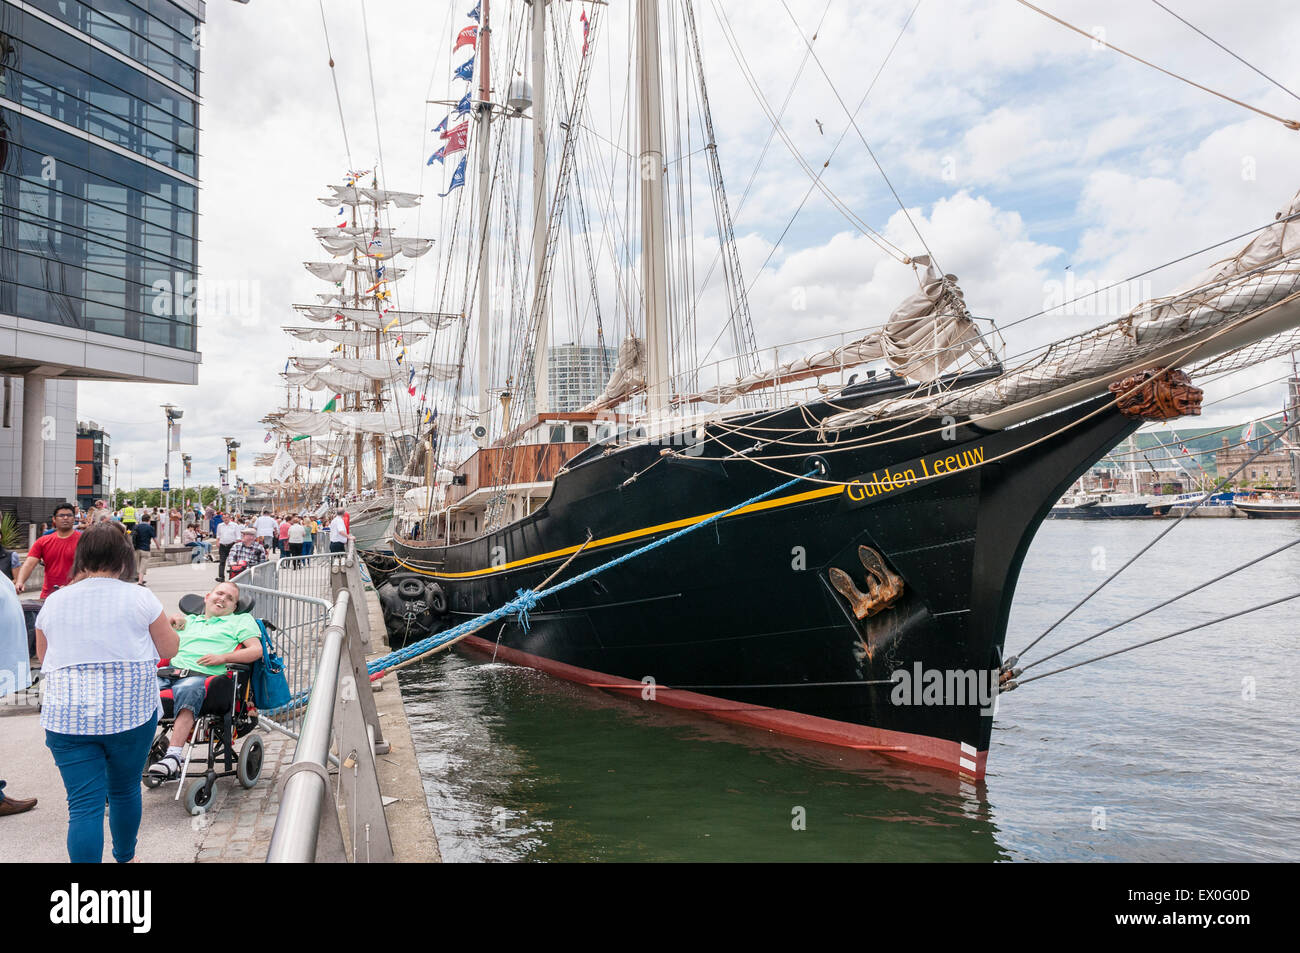 Belfast, Northern Ireland, UK. 02nd July, 2015. The Gulden Leeuw sailing ship at the Tall Ships event in Belfast - Stock Image